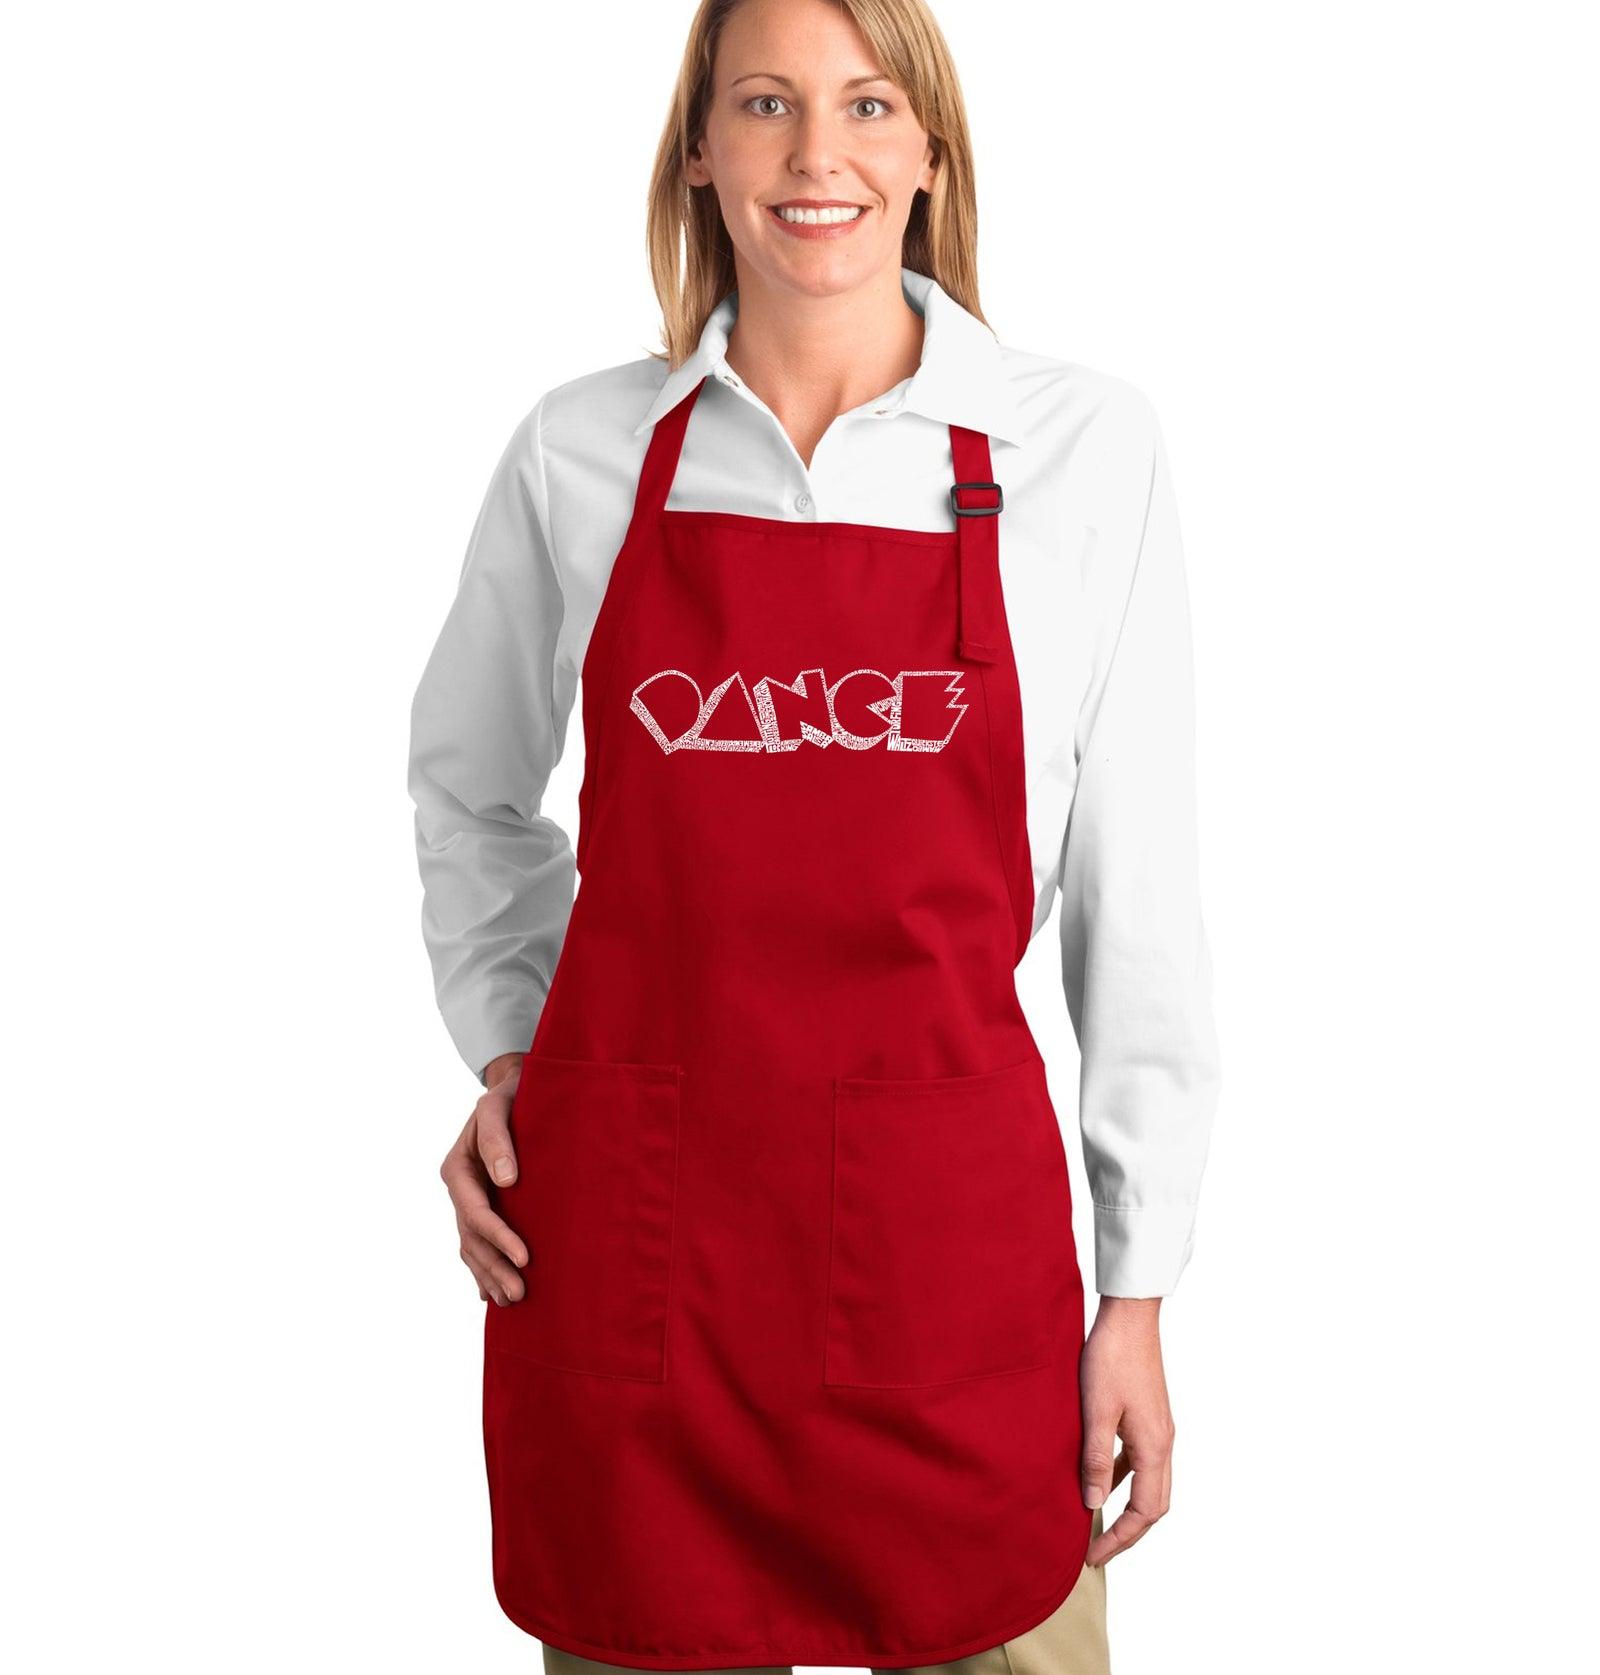 Full Length Apron - DIFFERENT STYLES OF DANCE